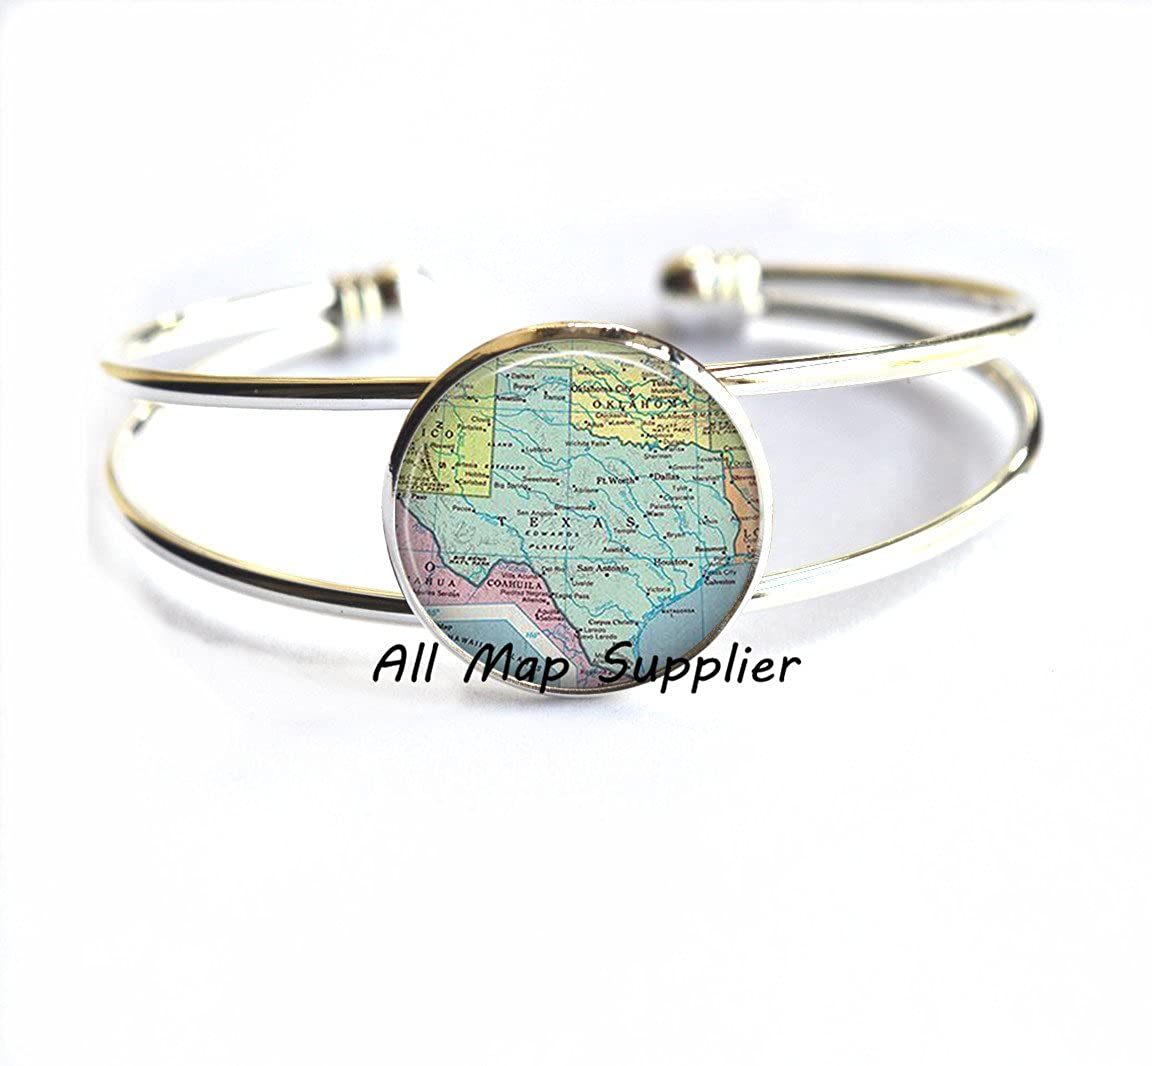 Texas map Bracelets Texas Bracelets state map Bracelet travel map jewelry,A0083 Texas state map jewelry Charming Bracelet Texas map Bracelet